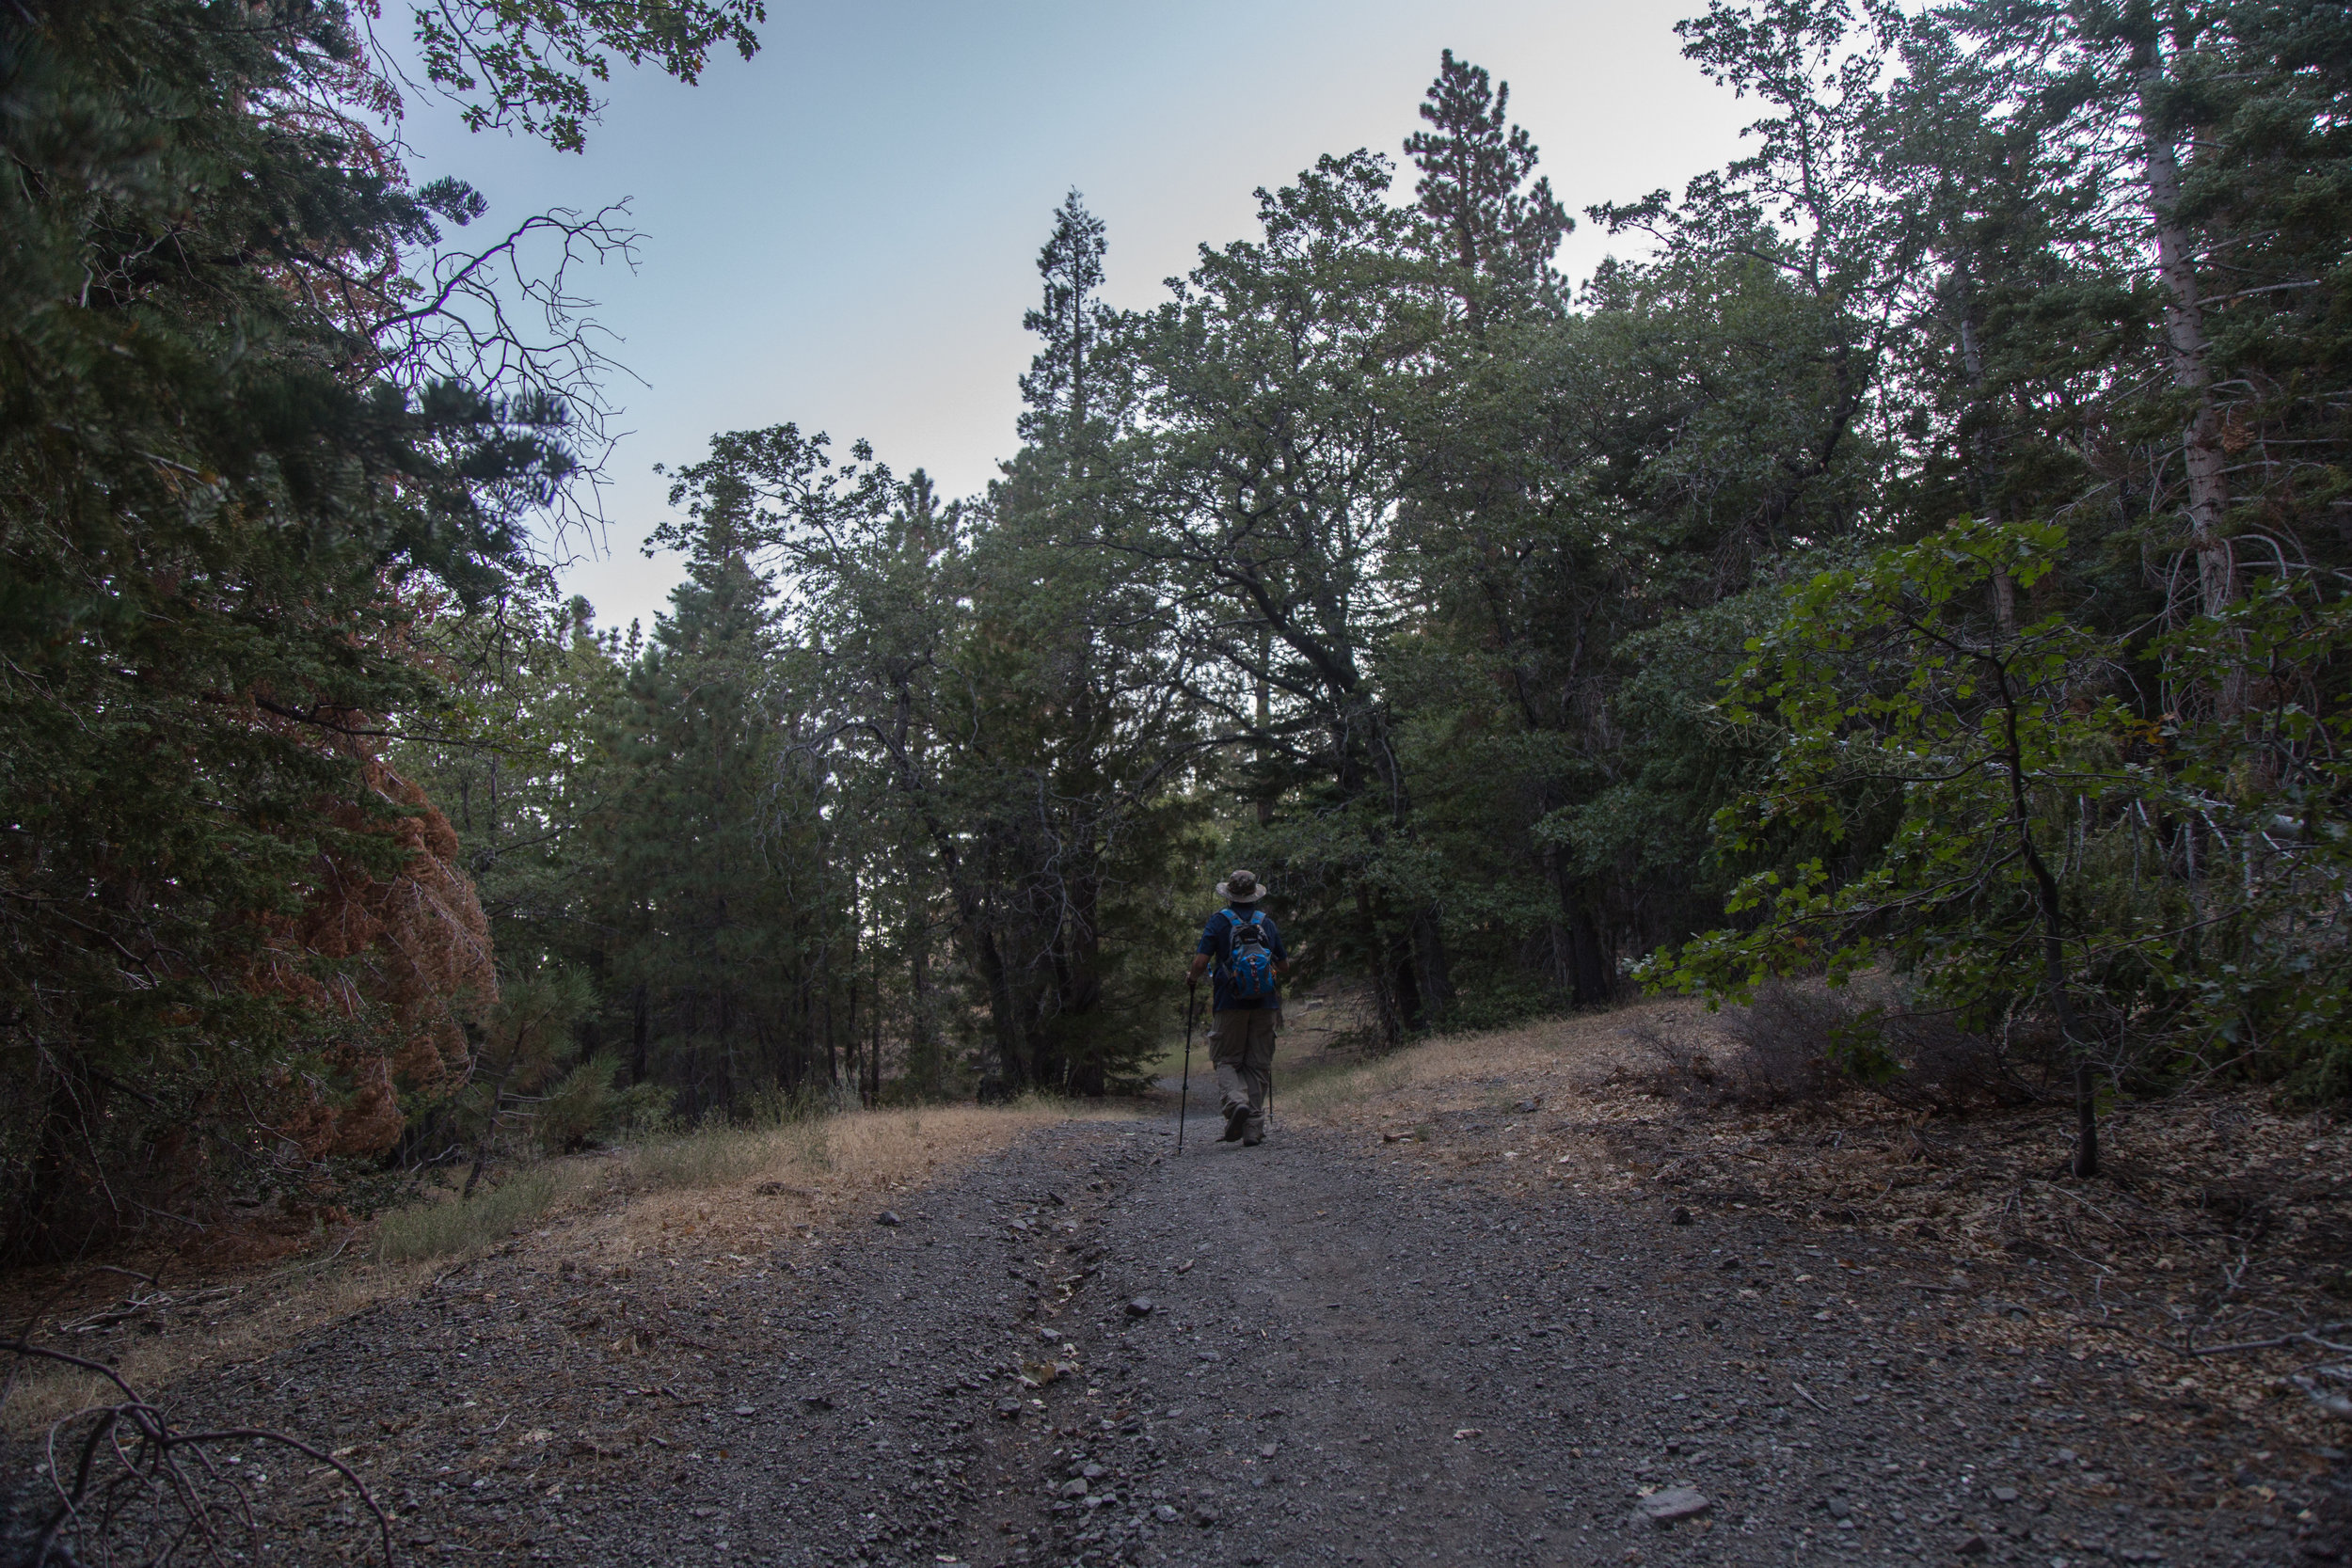 The trail starts off in a forest of pine and oak.